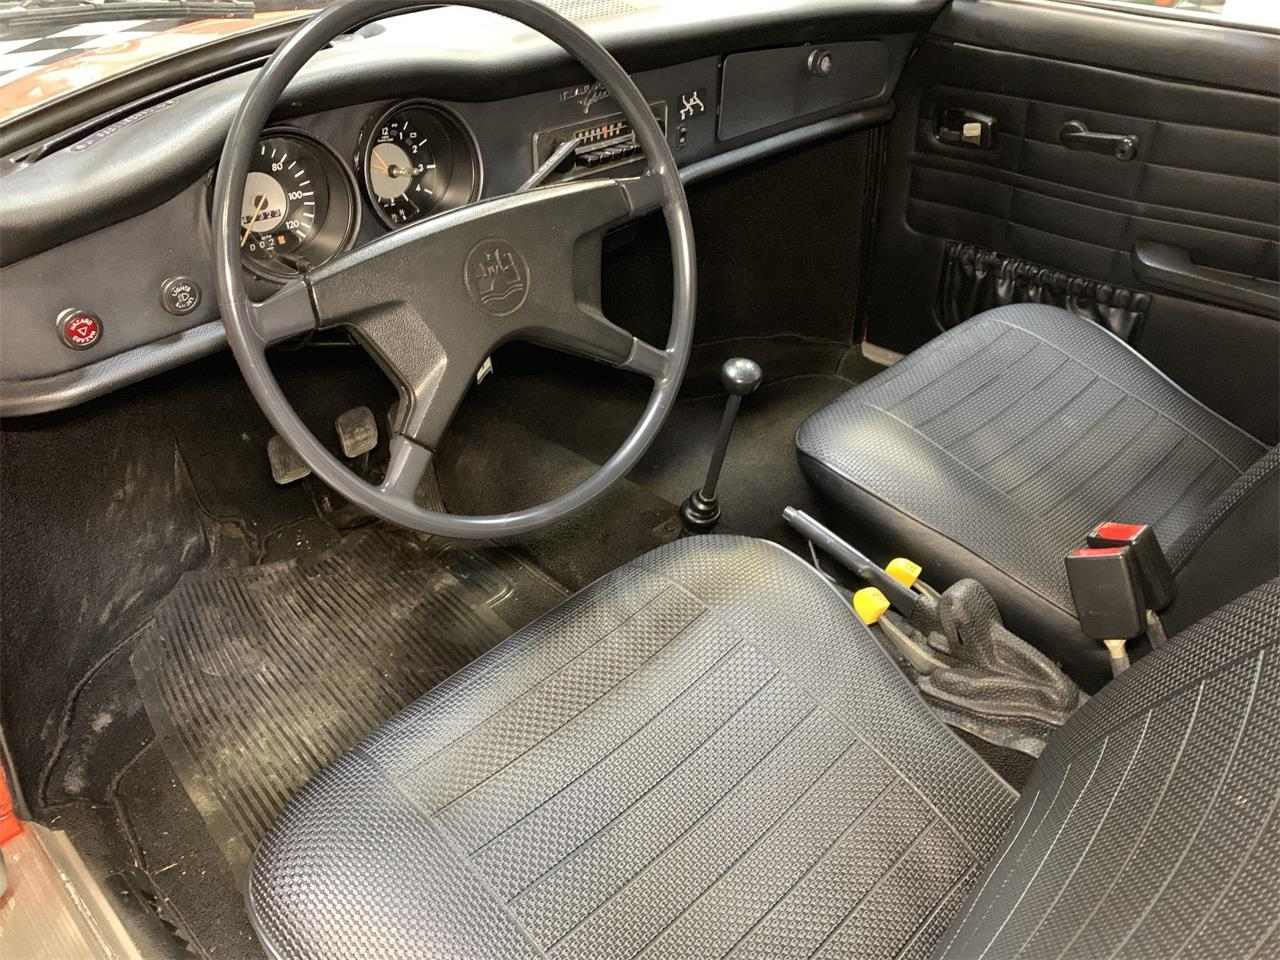 1974 Volkswagen Karmann Ghia for sale in Pittsburgh, PA – photo 44